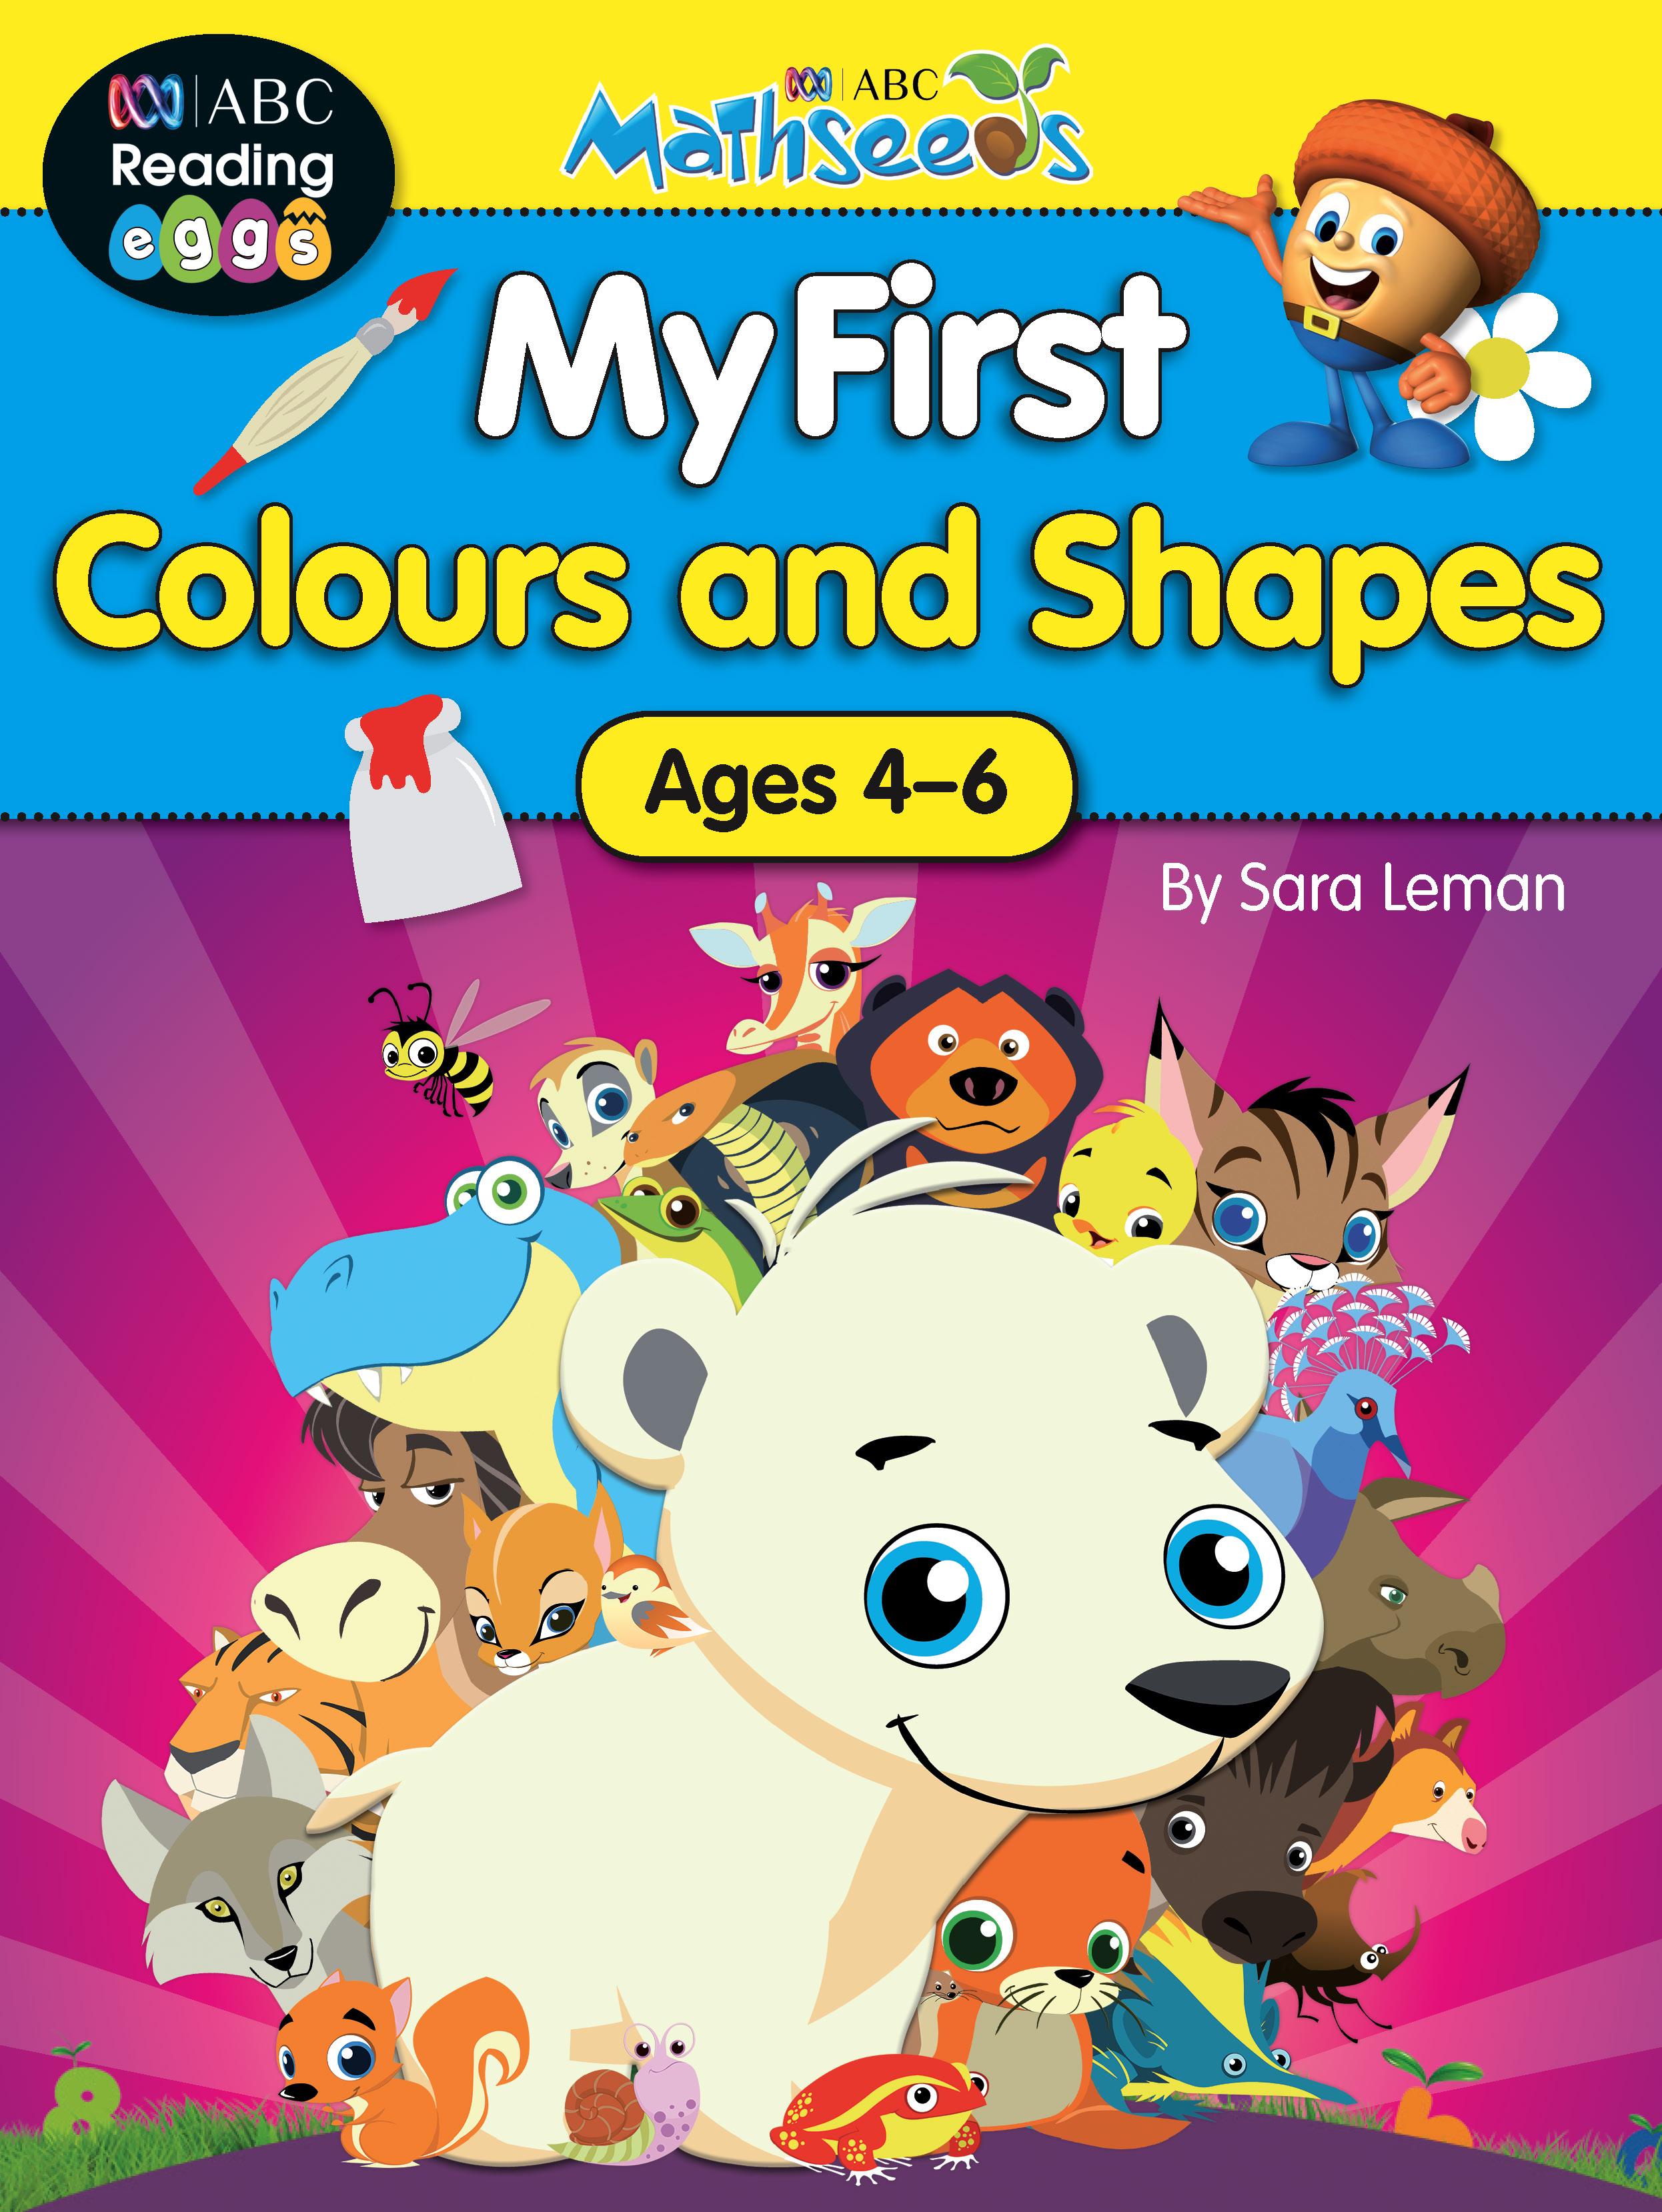 ABC Mathseeds My First Colours Activity Book